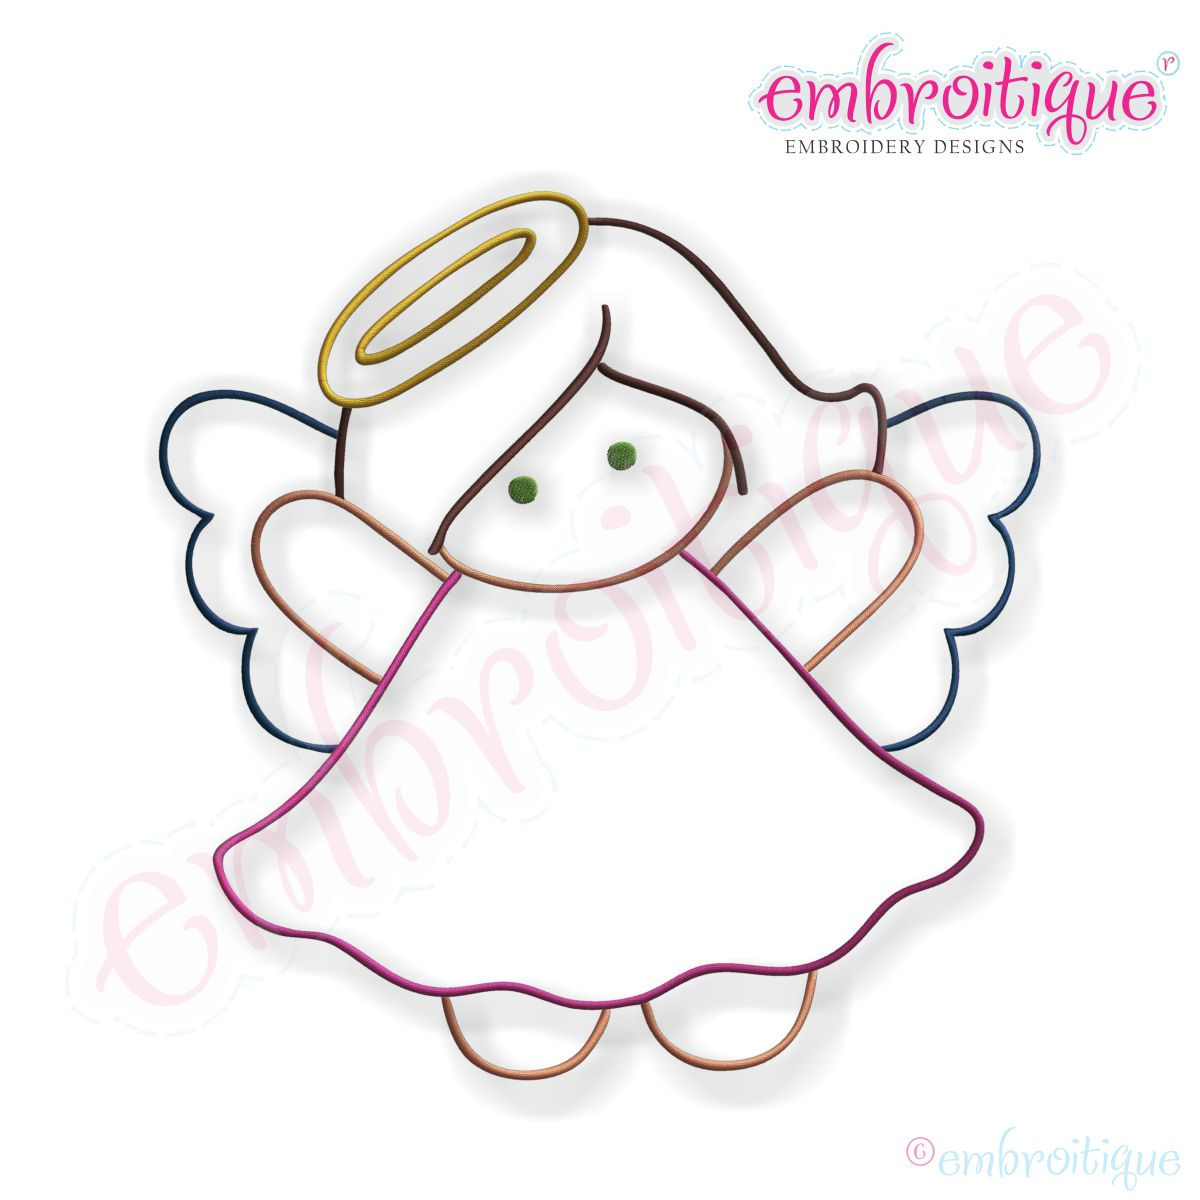 1200x1200 Simple Christmas Angel Embroidery Design